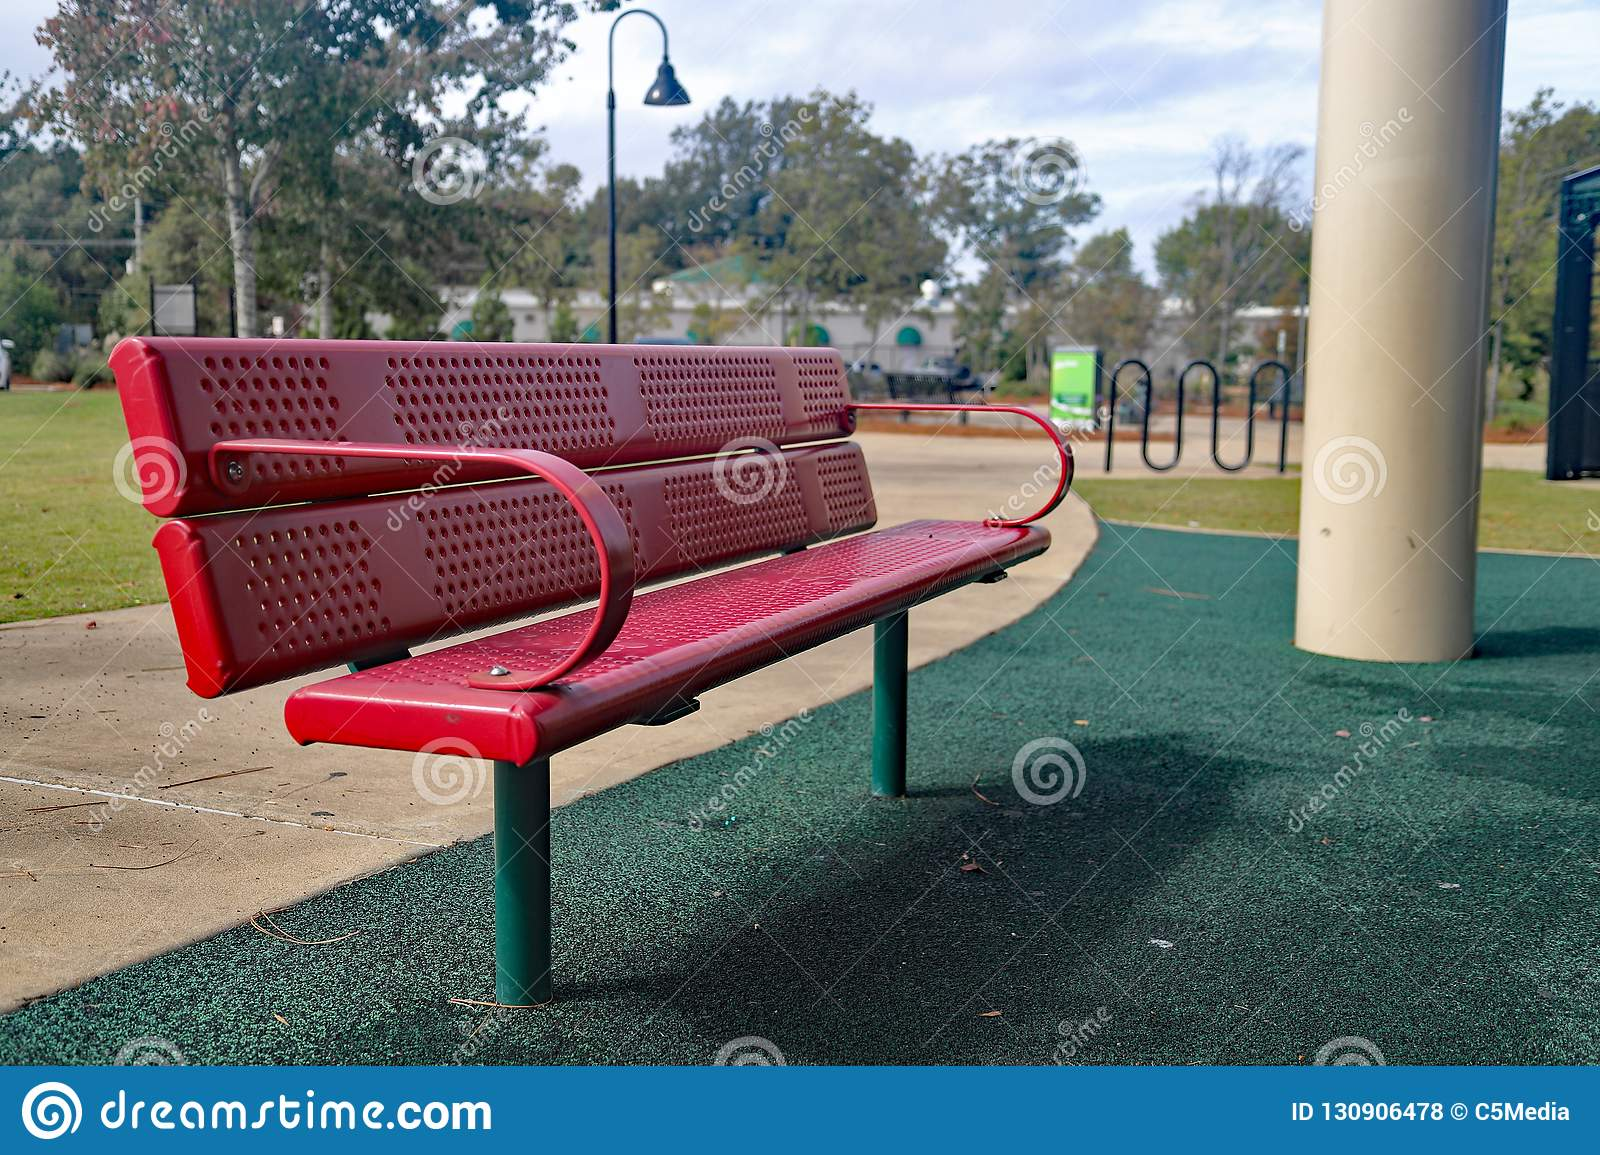 Fabulous Red Bench Seat At Playground Stock Photo Image Of Lawn Gmtry Best Dining Table And Chair Ideas Images Gmtryco